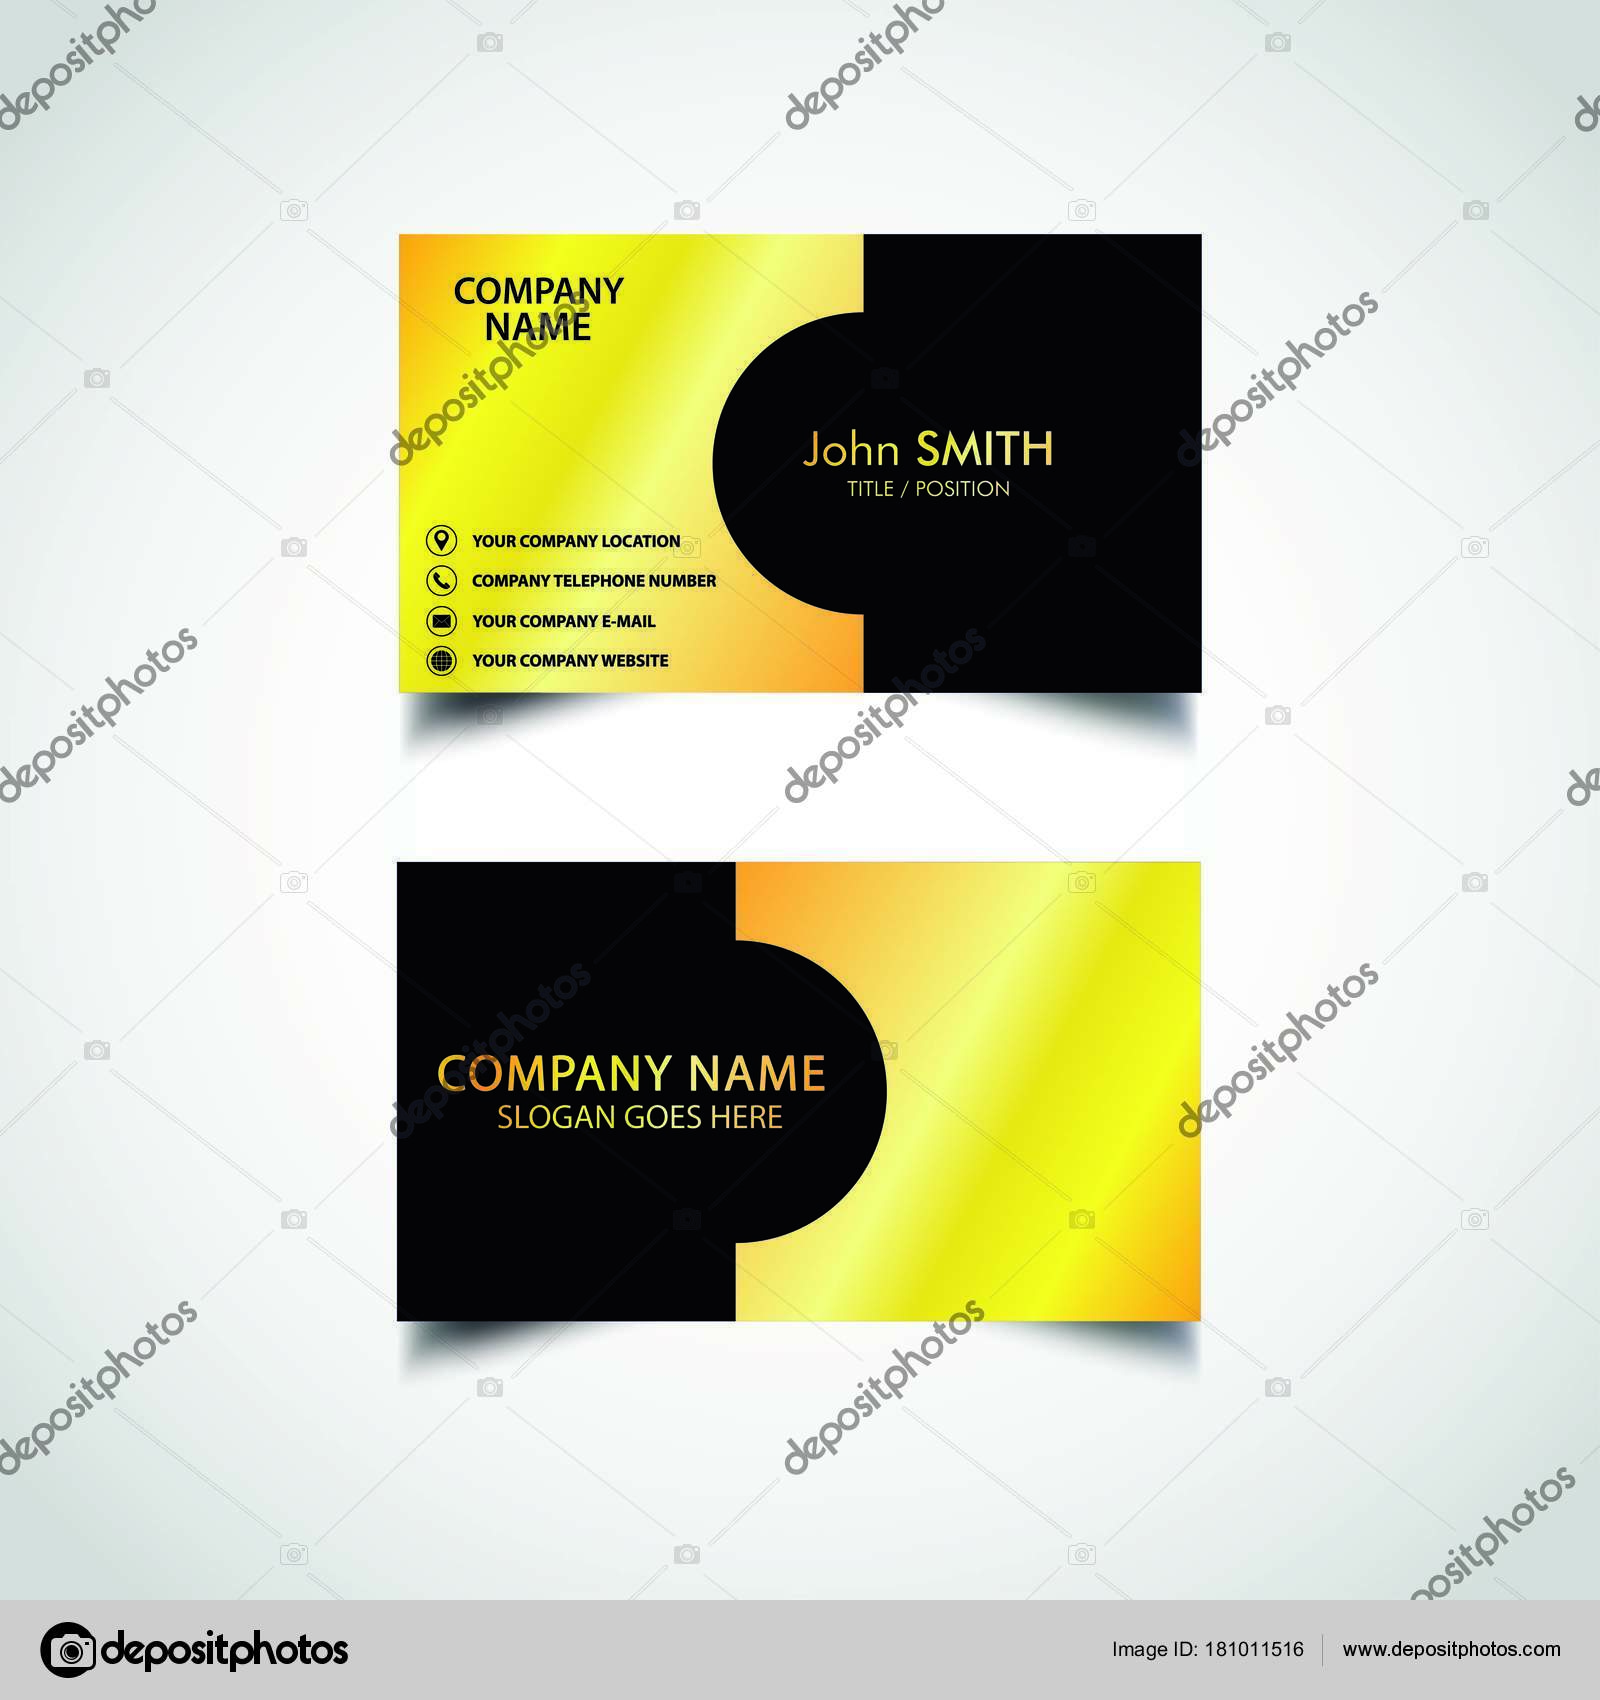 Golden business card template vector illustration eps file stock golden business card template vector illustration eps file stock vector friedricerecipe Gallery